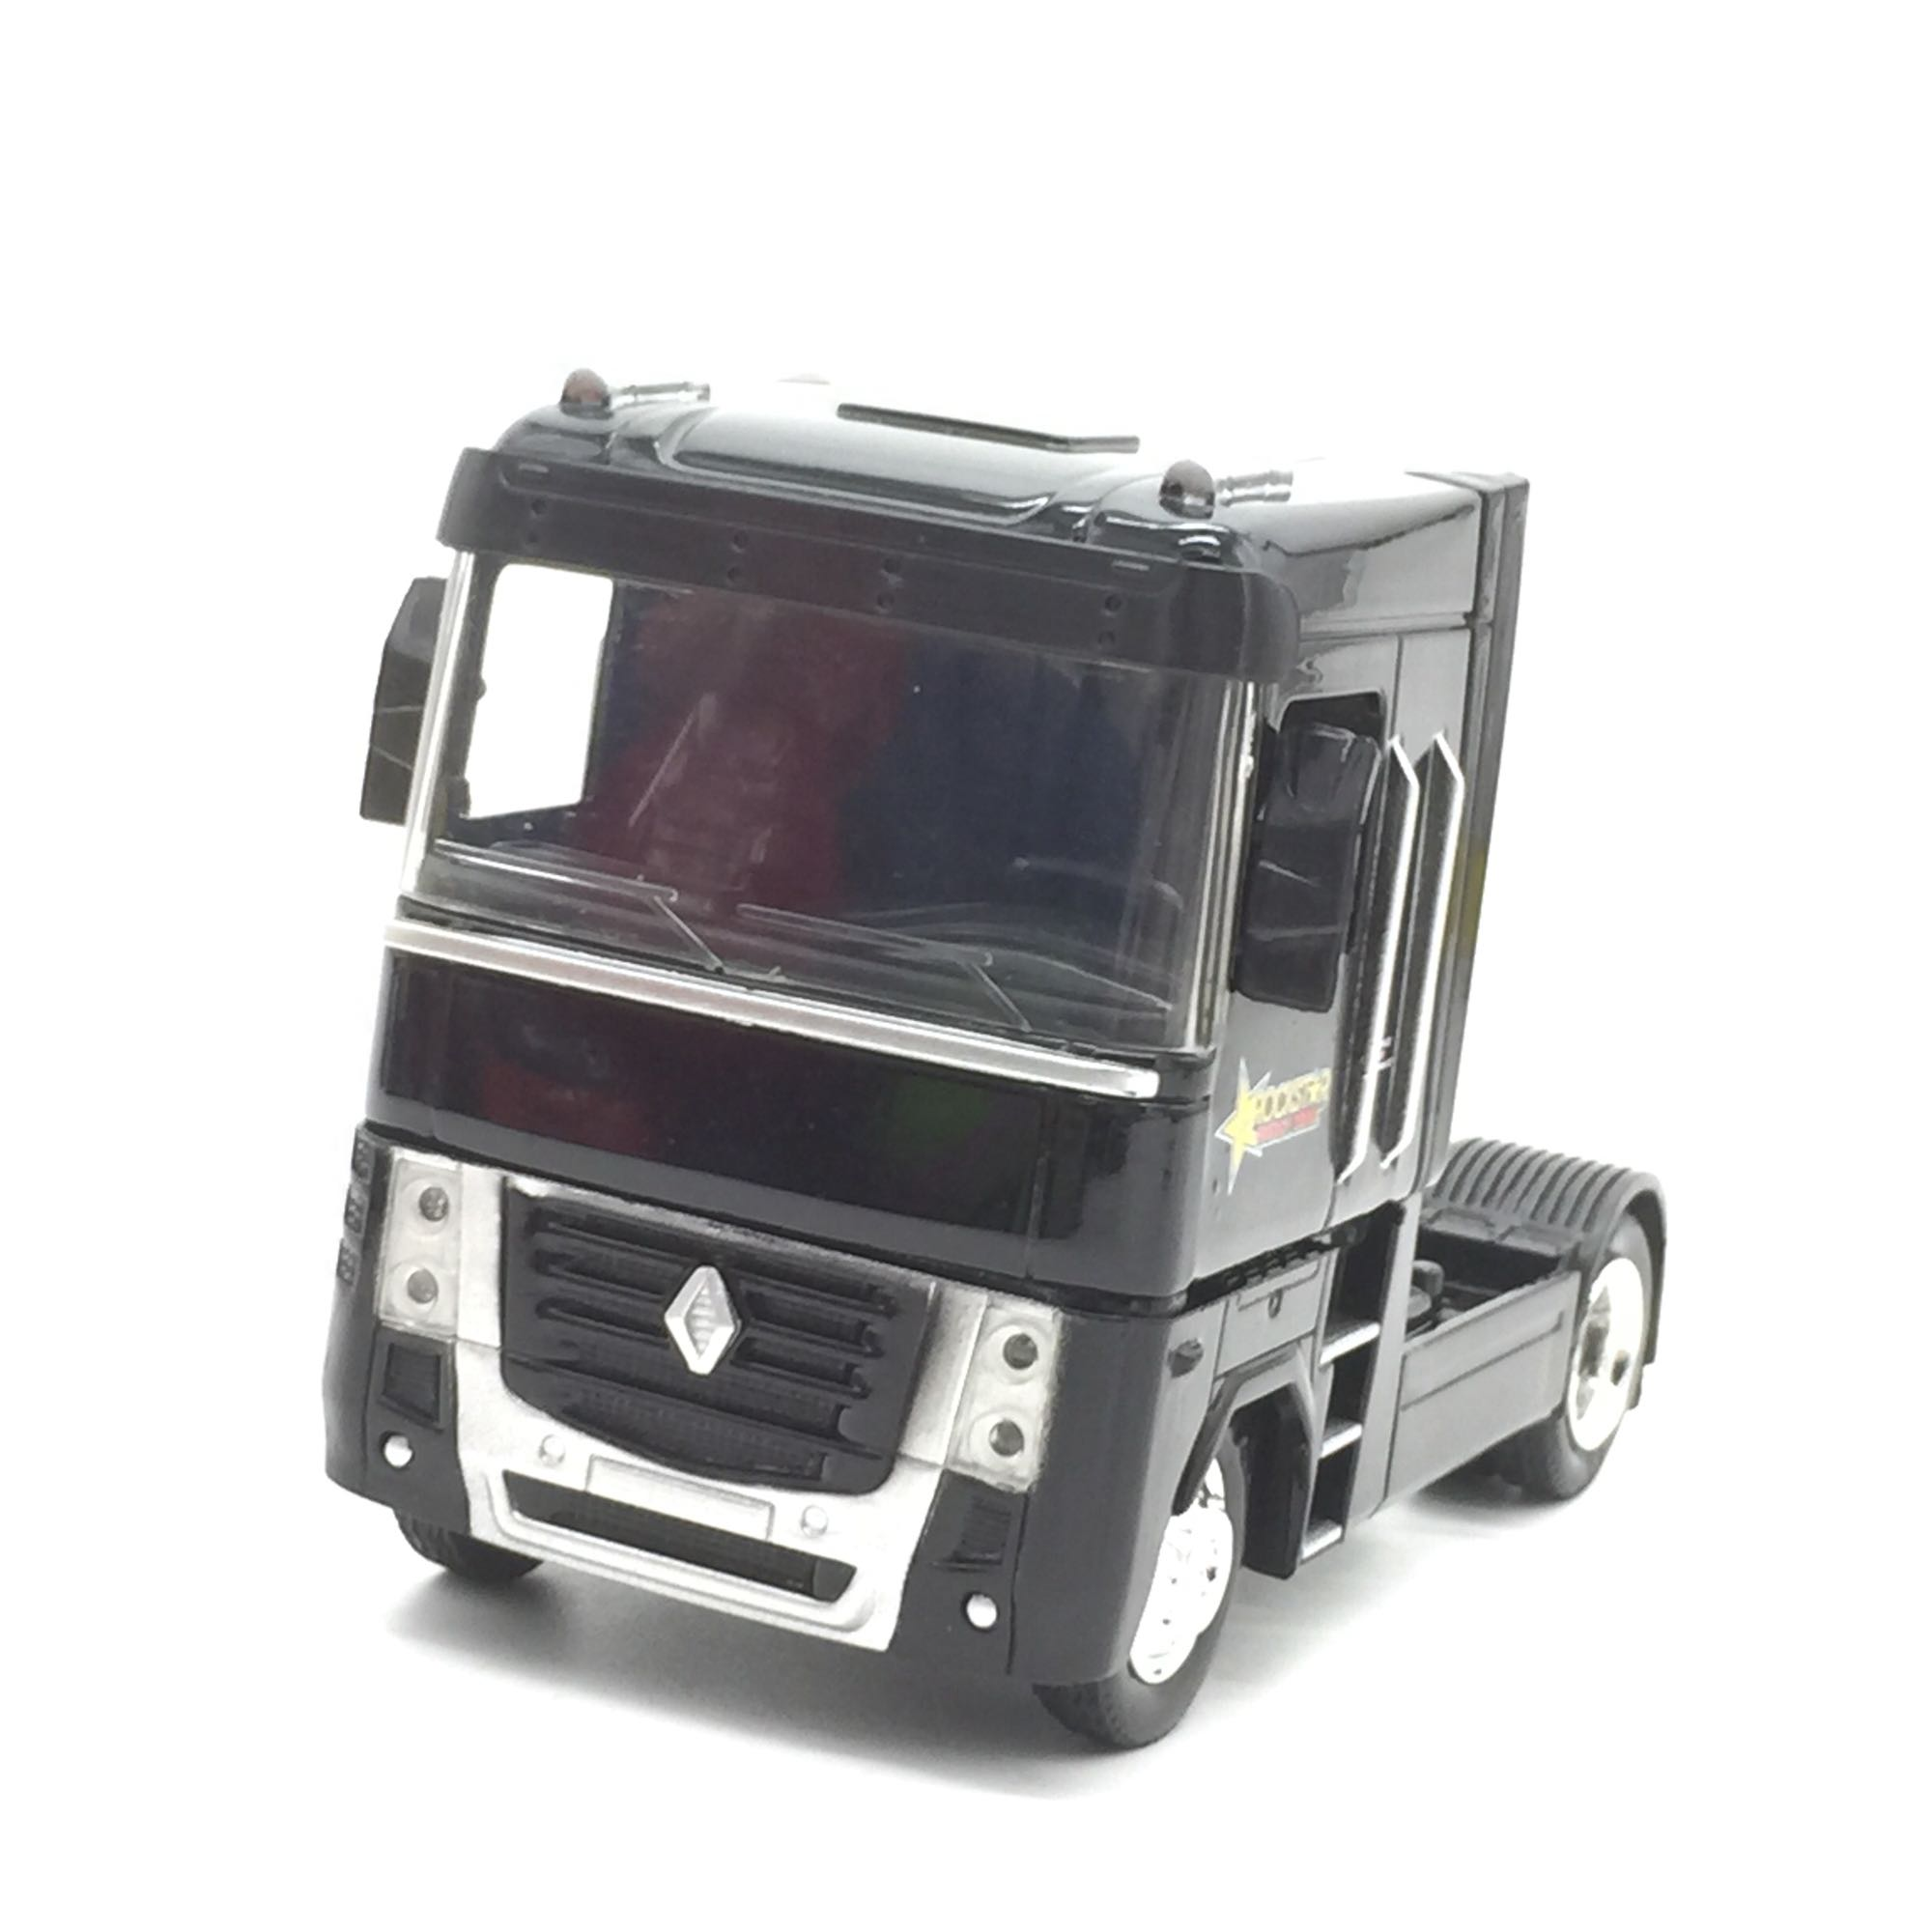 1:43 Sacle Alloy Renault Truck Head,high Simulation Renault Truck,Collecting Alloy Car Models,free Shipping